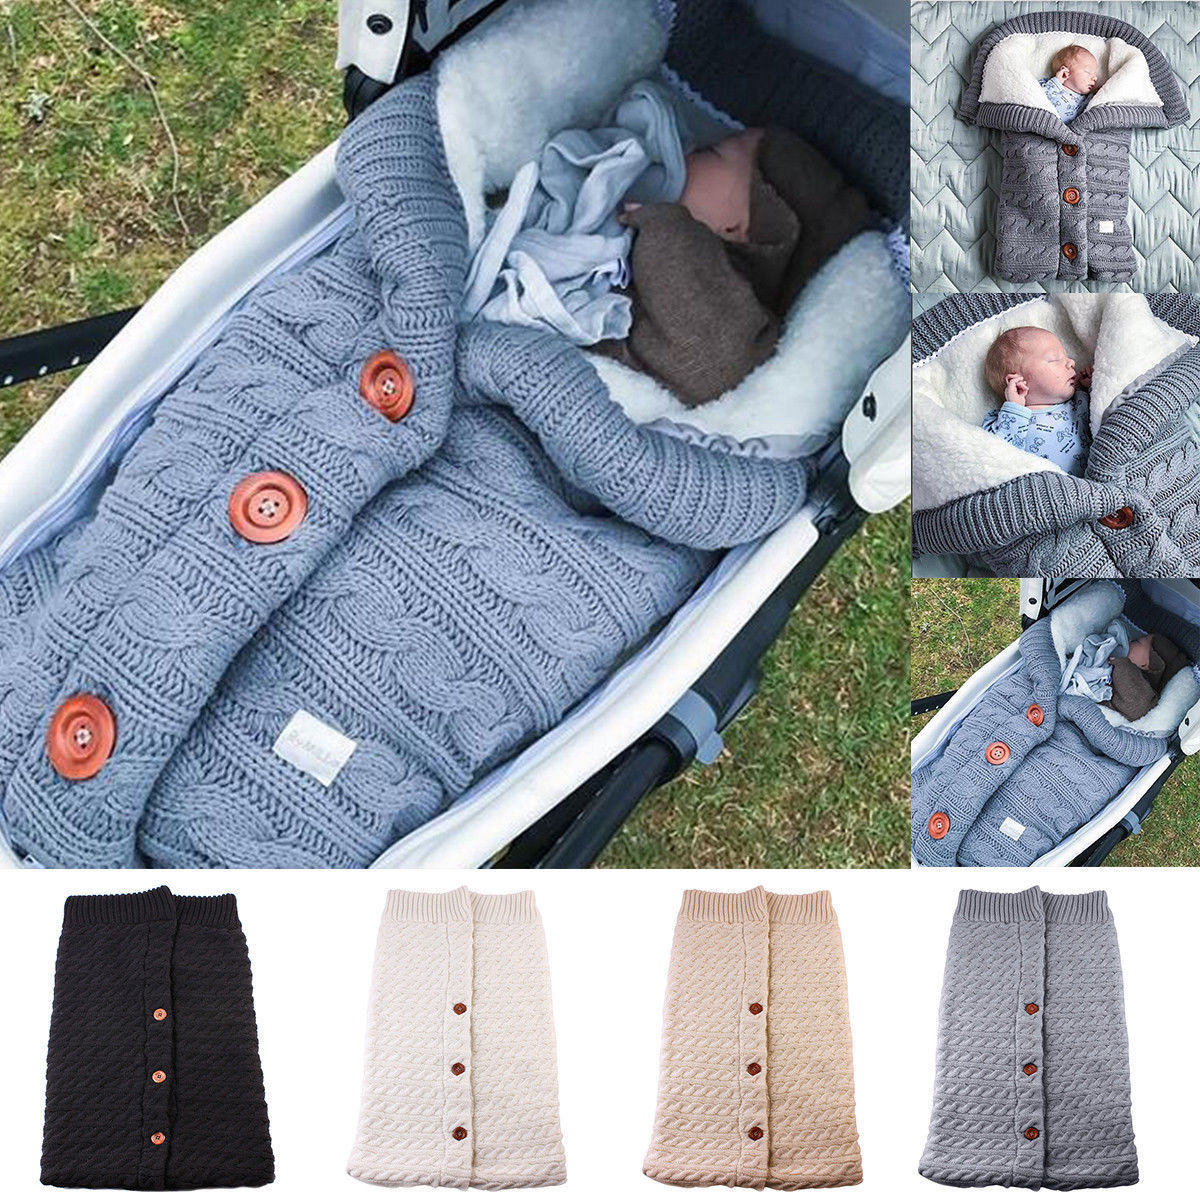 Newborn Baby Winter Warm Sleeping Bags Infant Button Knit Swaddle Wrap Swaddling Stroller Wrap Toddler Blanket Sleeping Bags(China)